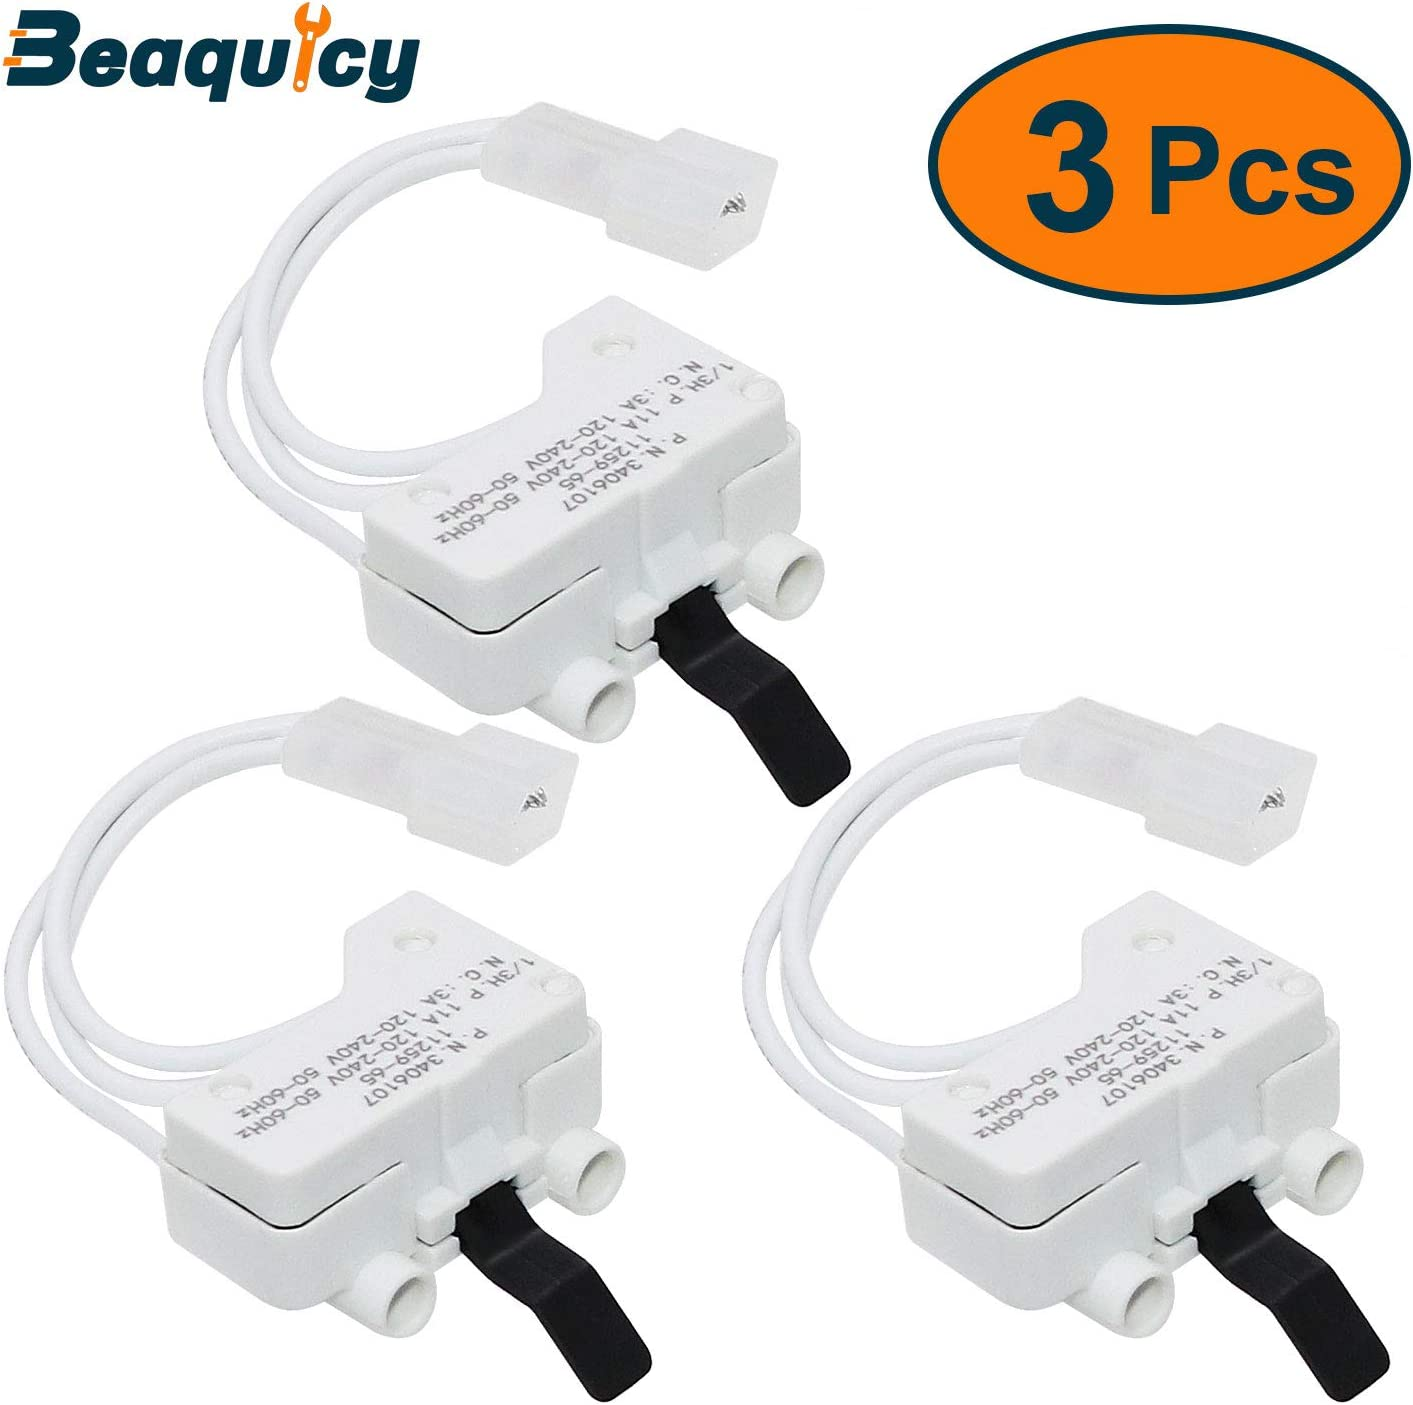 3406107 Dryer Door Switch by Beaquicy - Replacement for Whirlpool, Kenmore, Roper, Amana, Crosley Dryer - Replaces 3406109 (3-Pack)